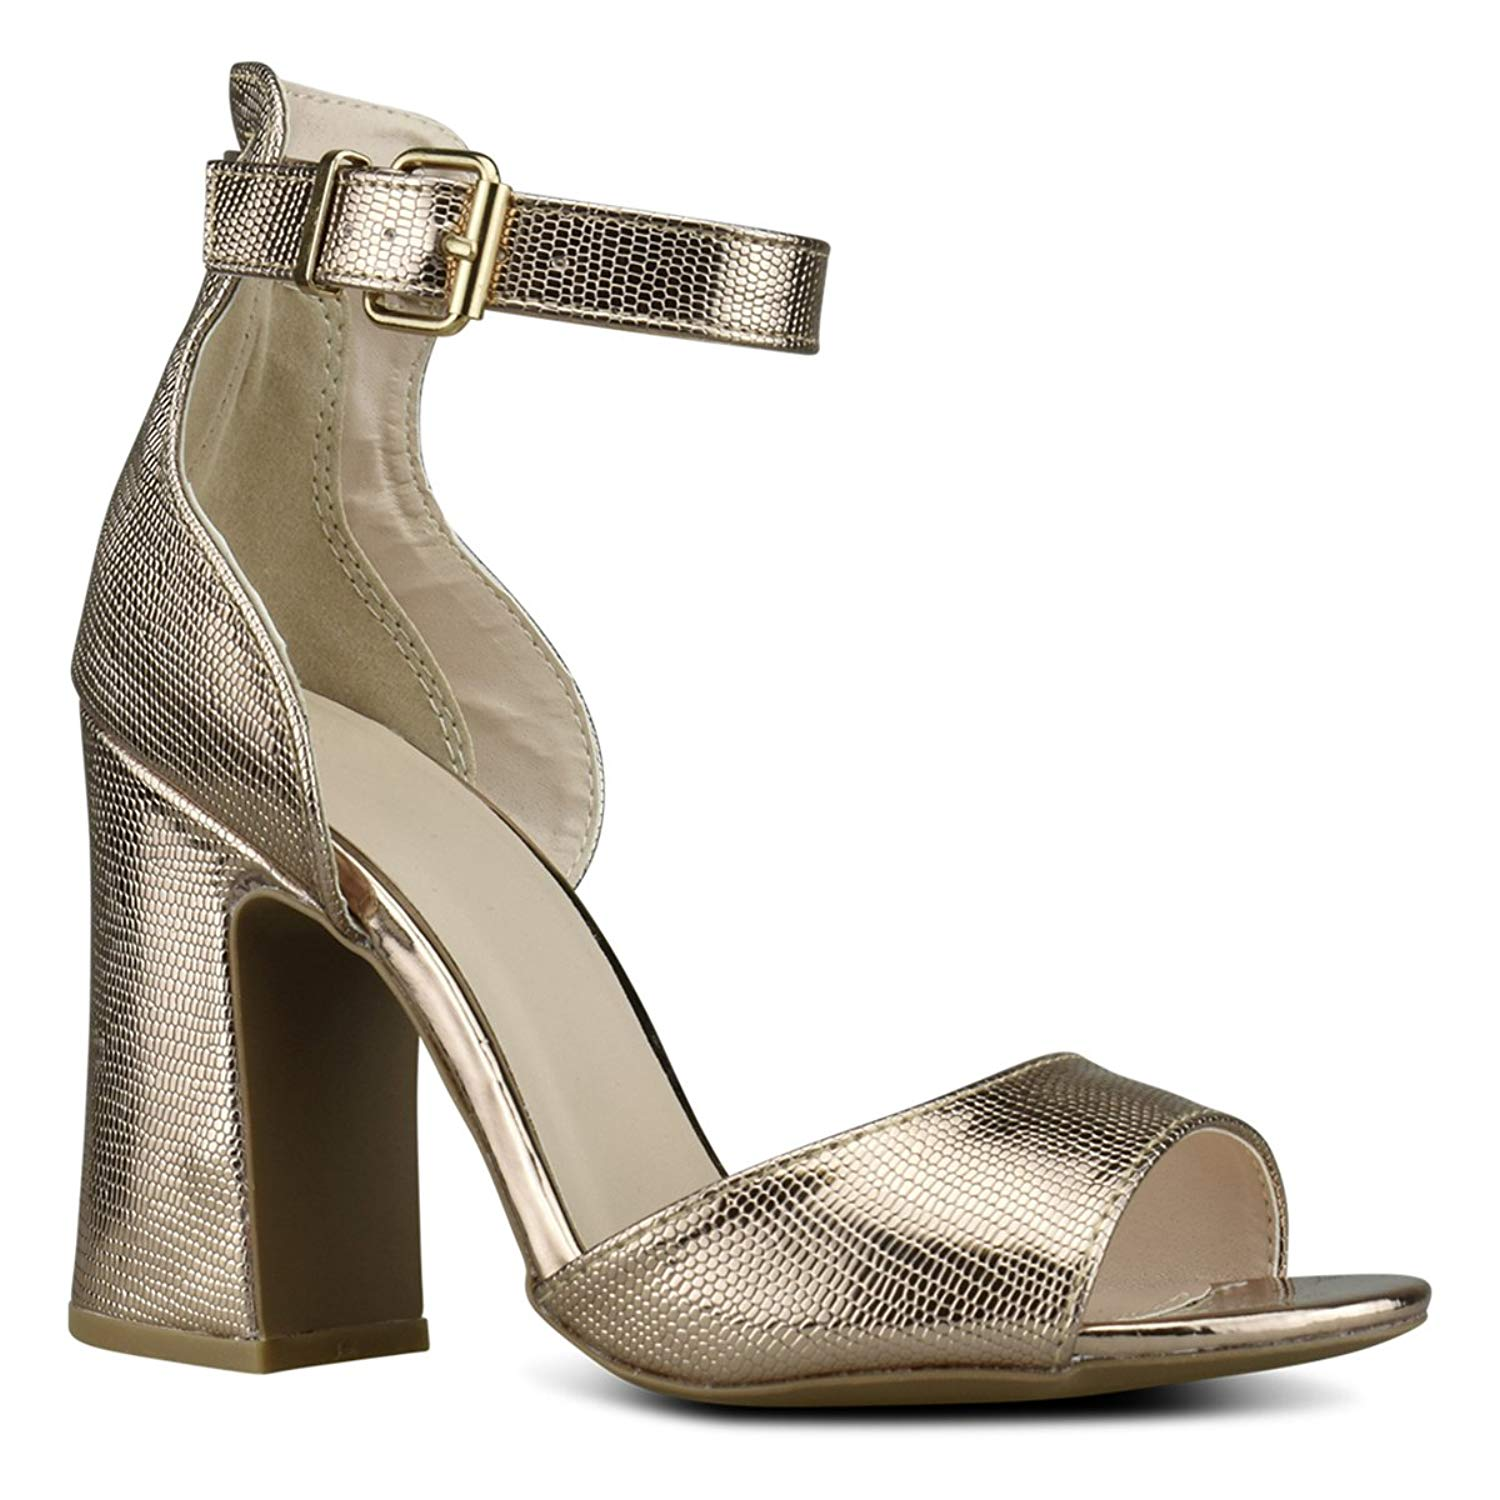 Premier Standard Women's Strappy Open Toe High Chunky Heel - Sexy Stacked Heel Sandal - Cute One Band Strappy Shoe